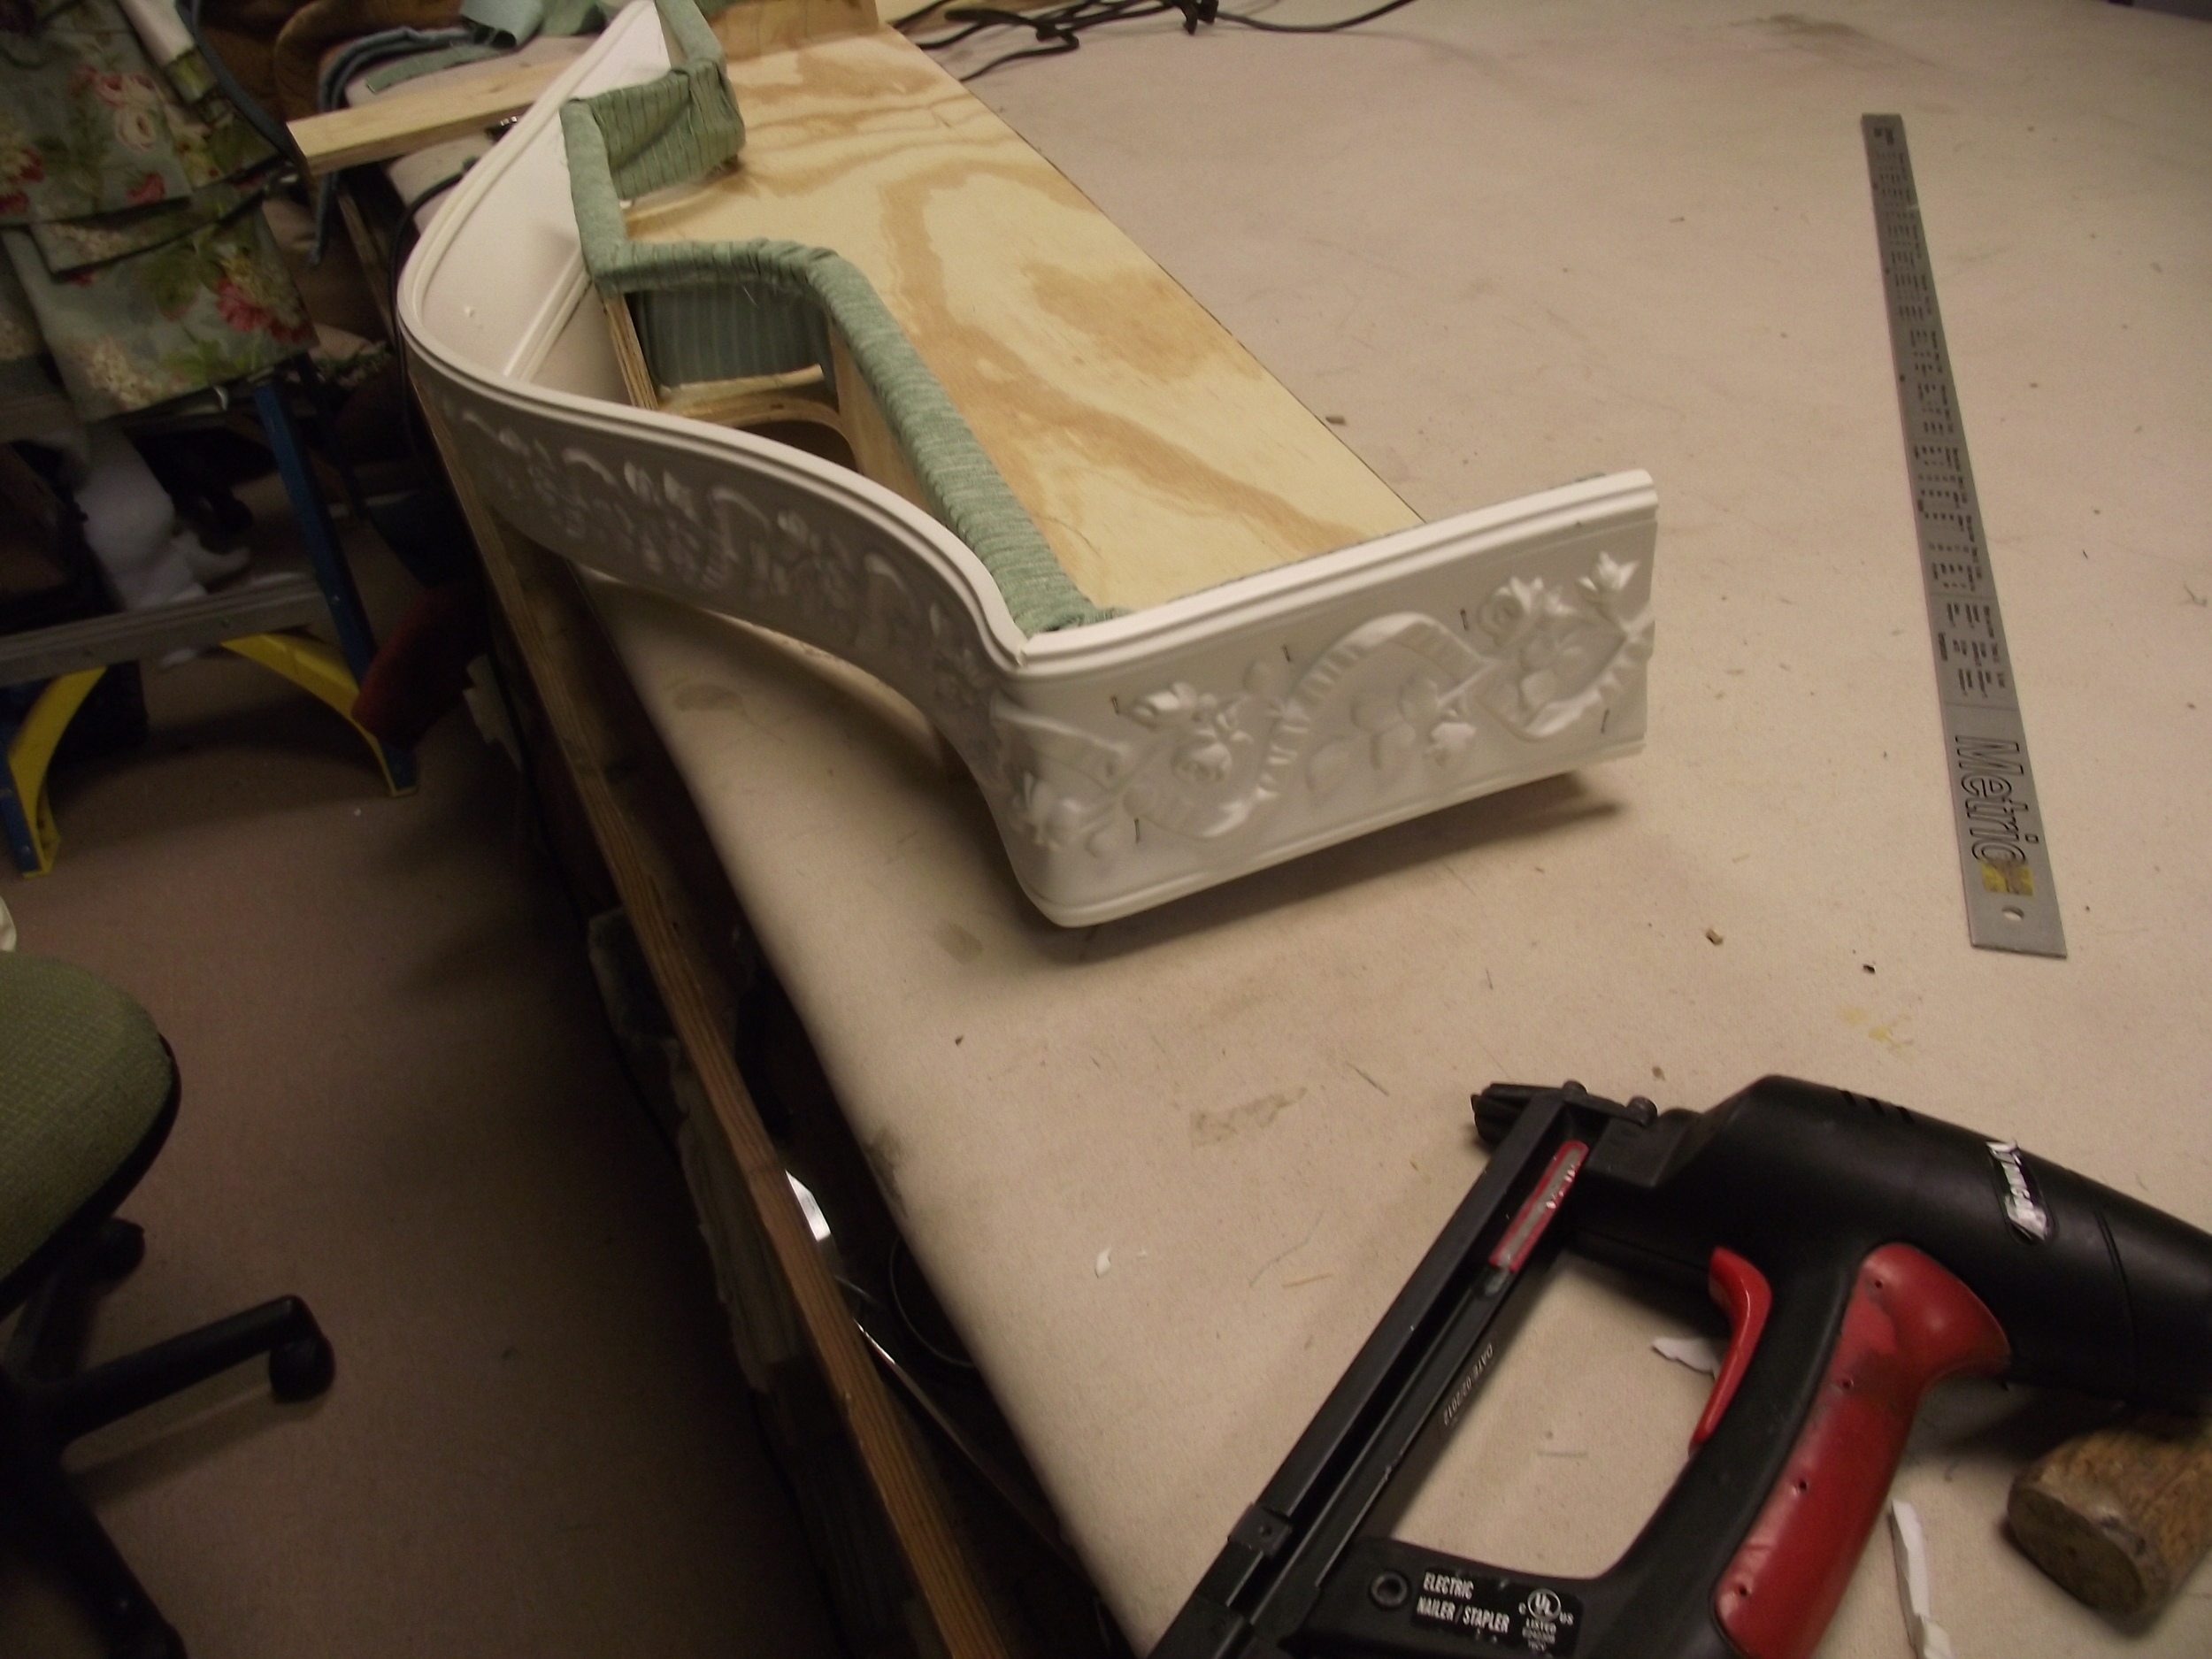 Bendable molding being attached to cornice frame. Notice the 45 degree corner.